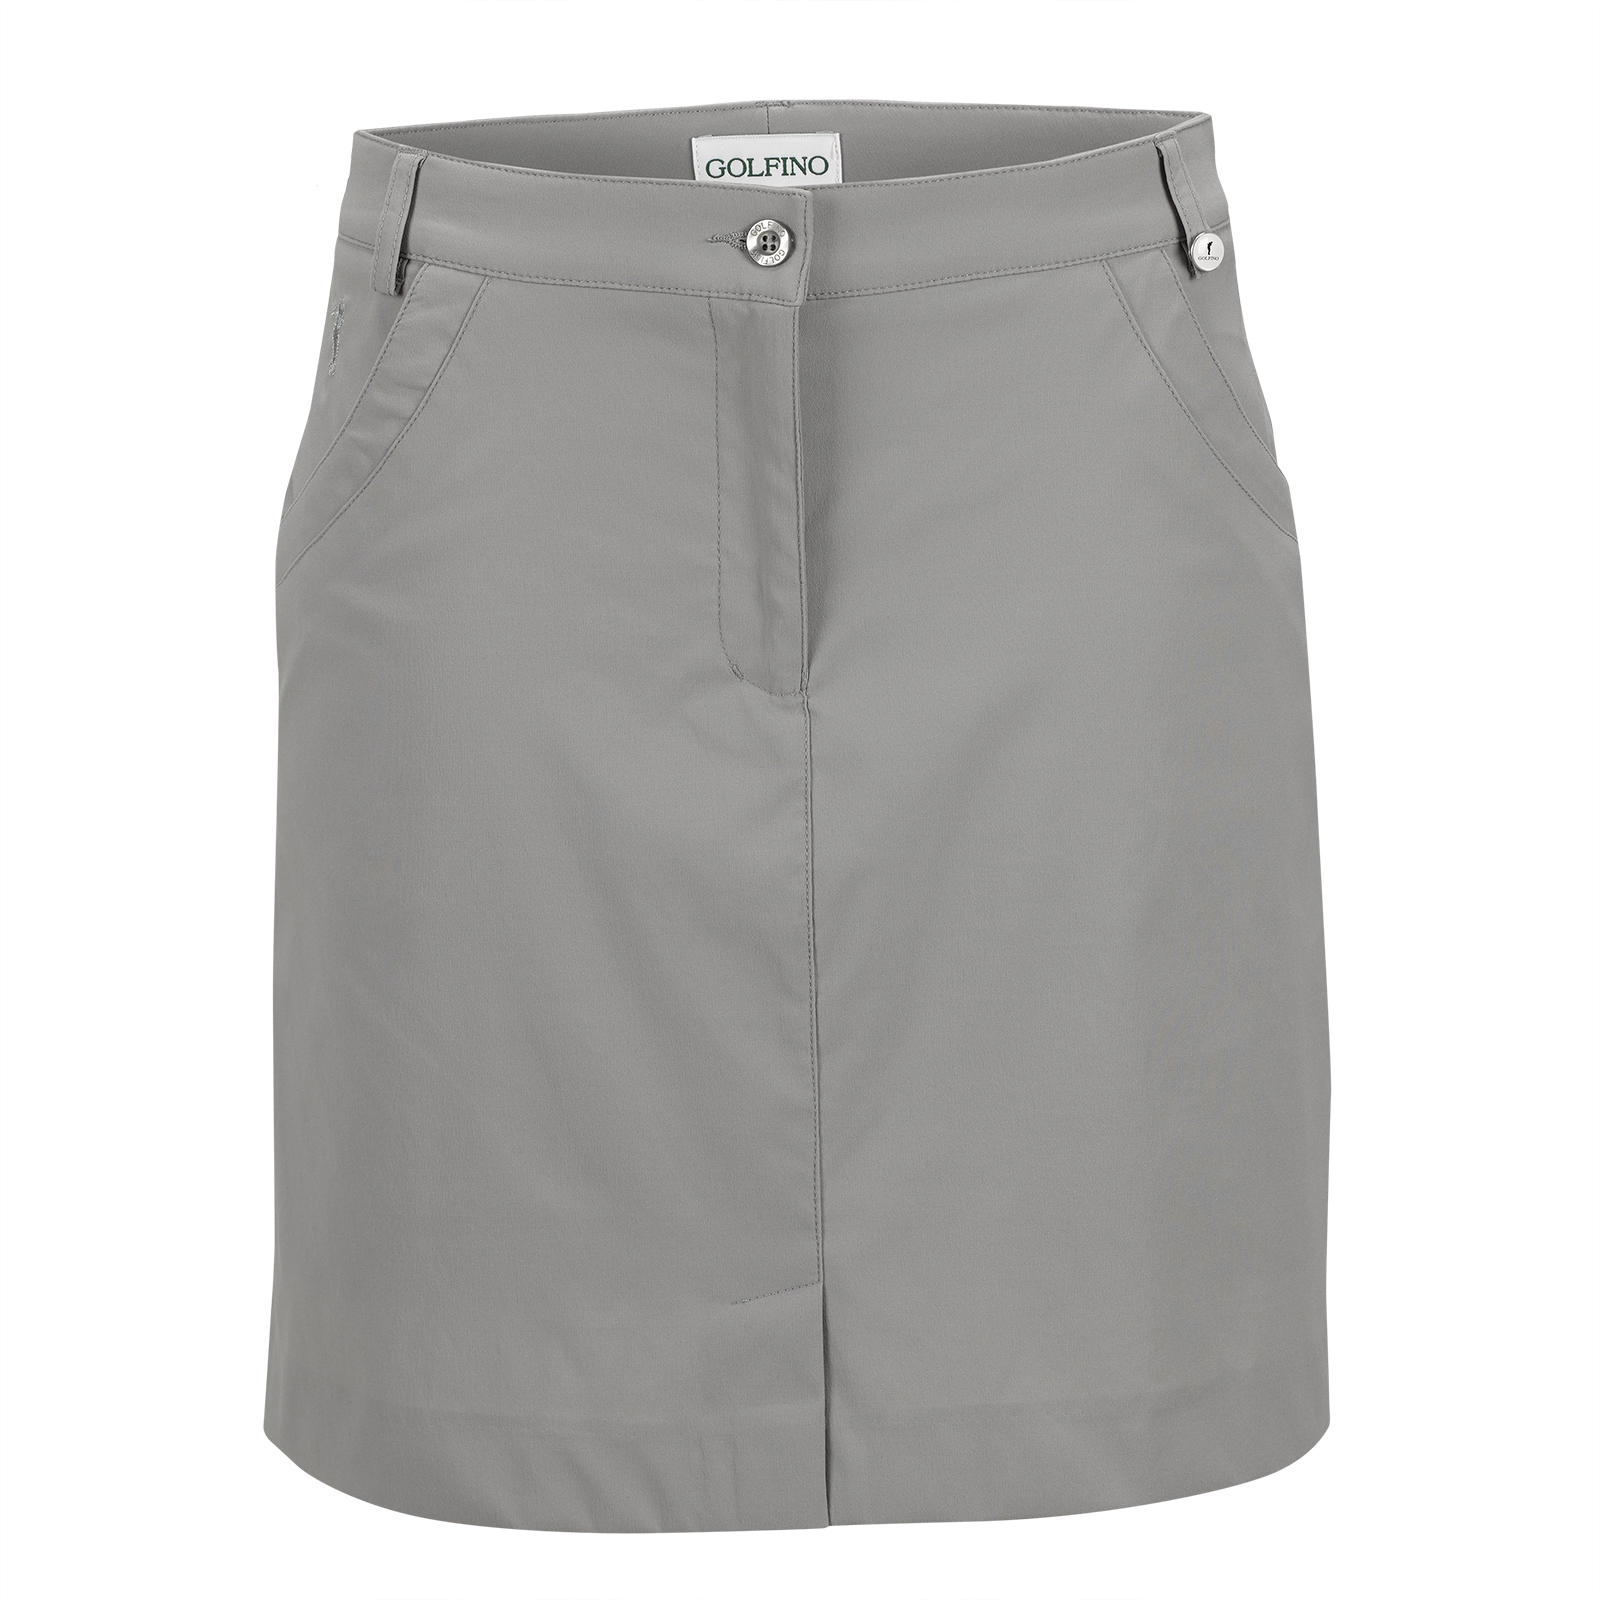 Sofiguard Damen Medium Golfskort aus Techno-Stretch mit Sun Protection